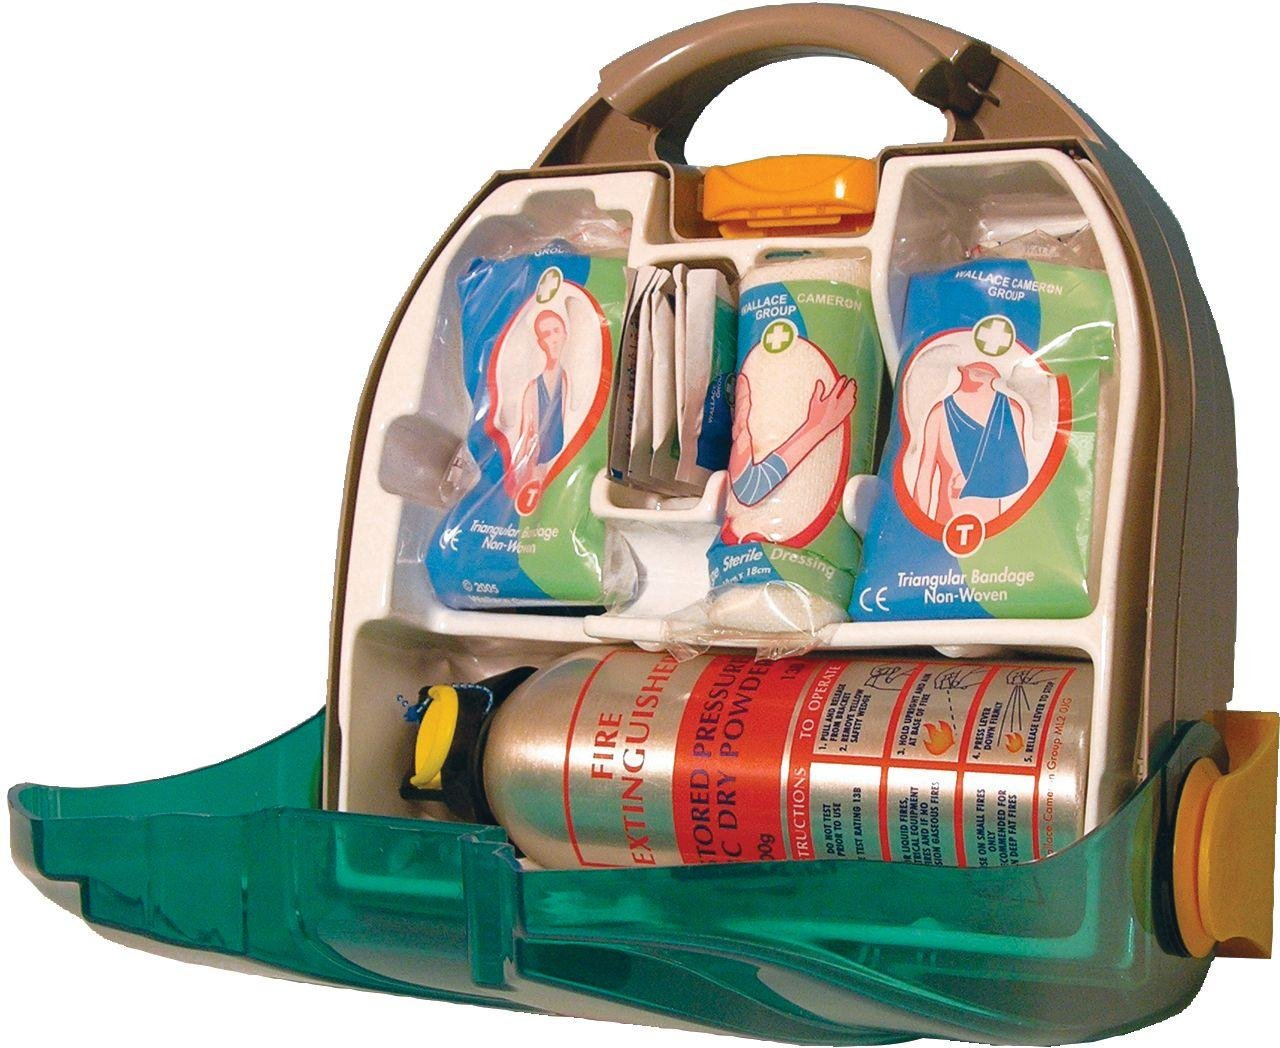 Driving gloves argos - Astroplast Bambino First Aid Kit With Fire Extinguisher